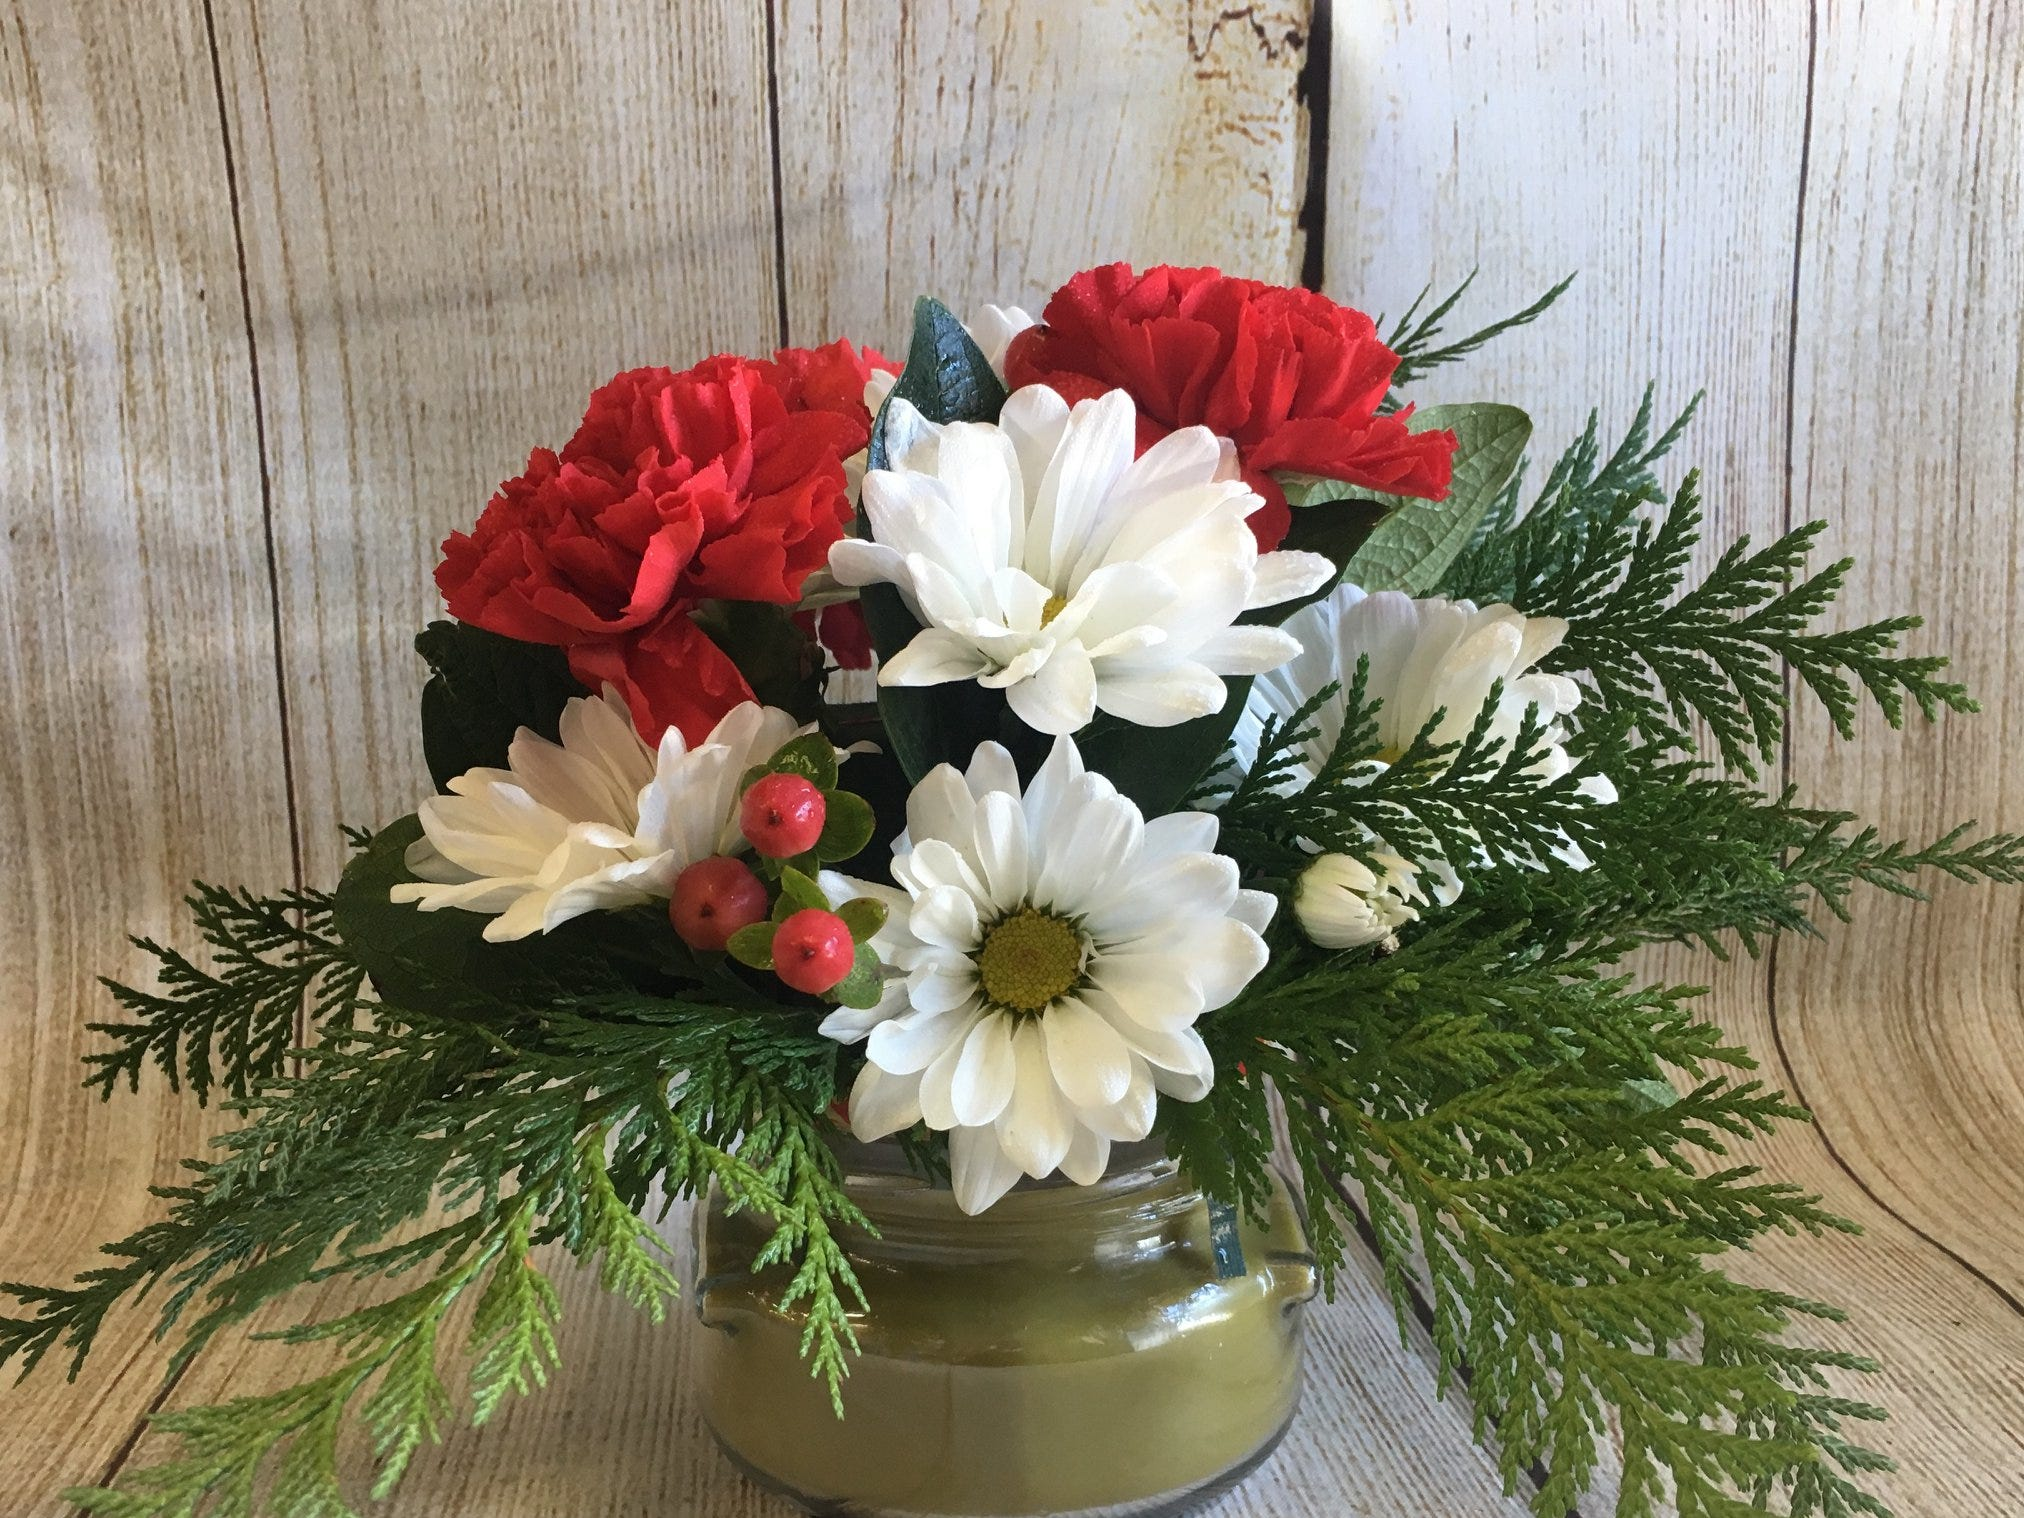 Give this bouquet and candle set sold at Flowers and More by Dean